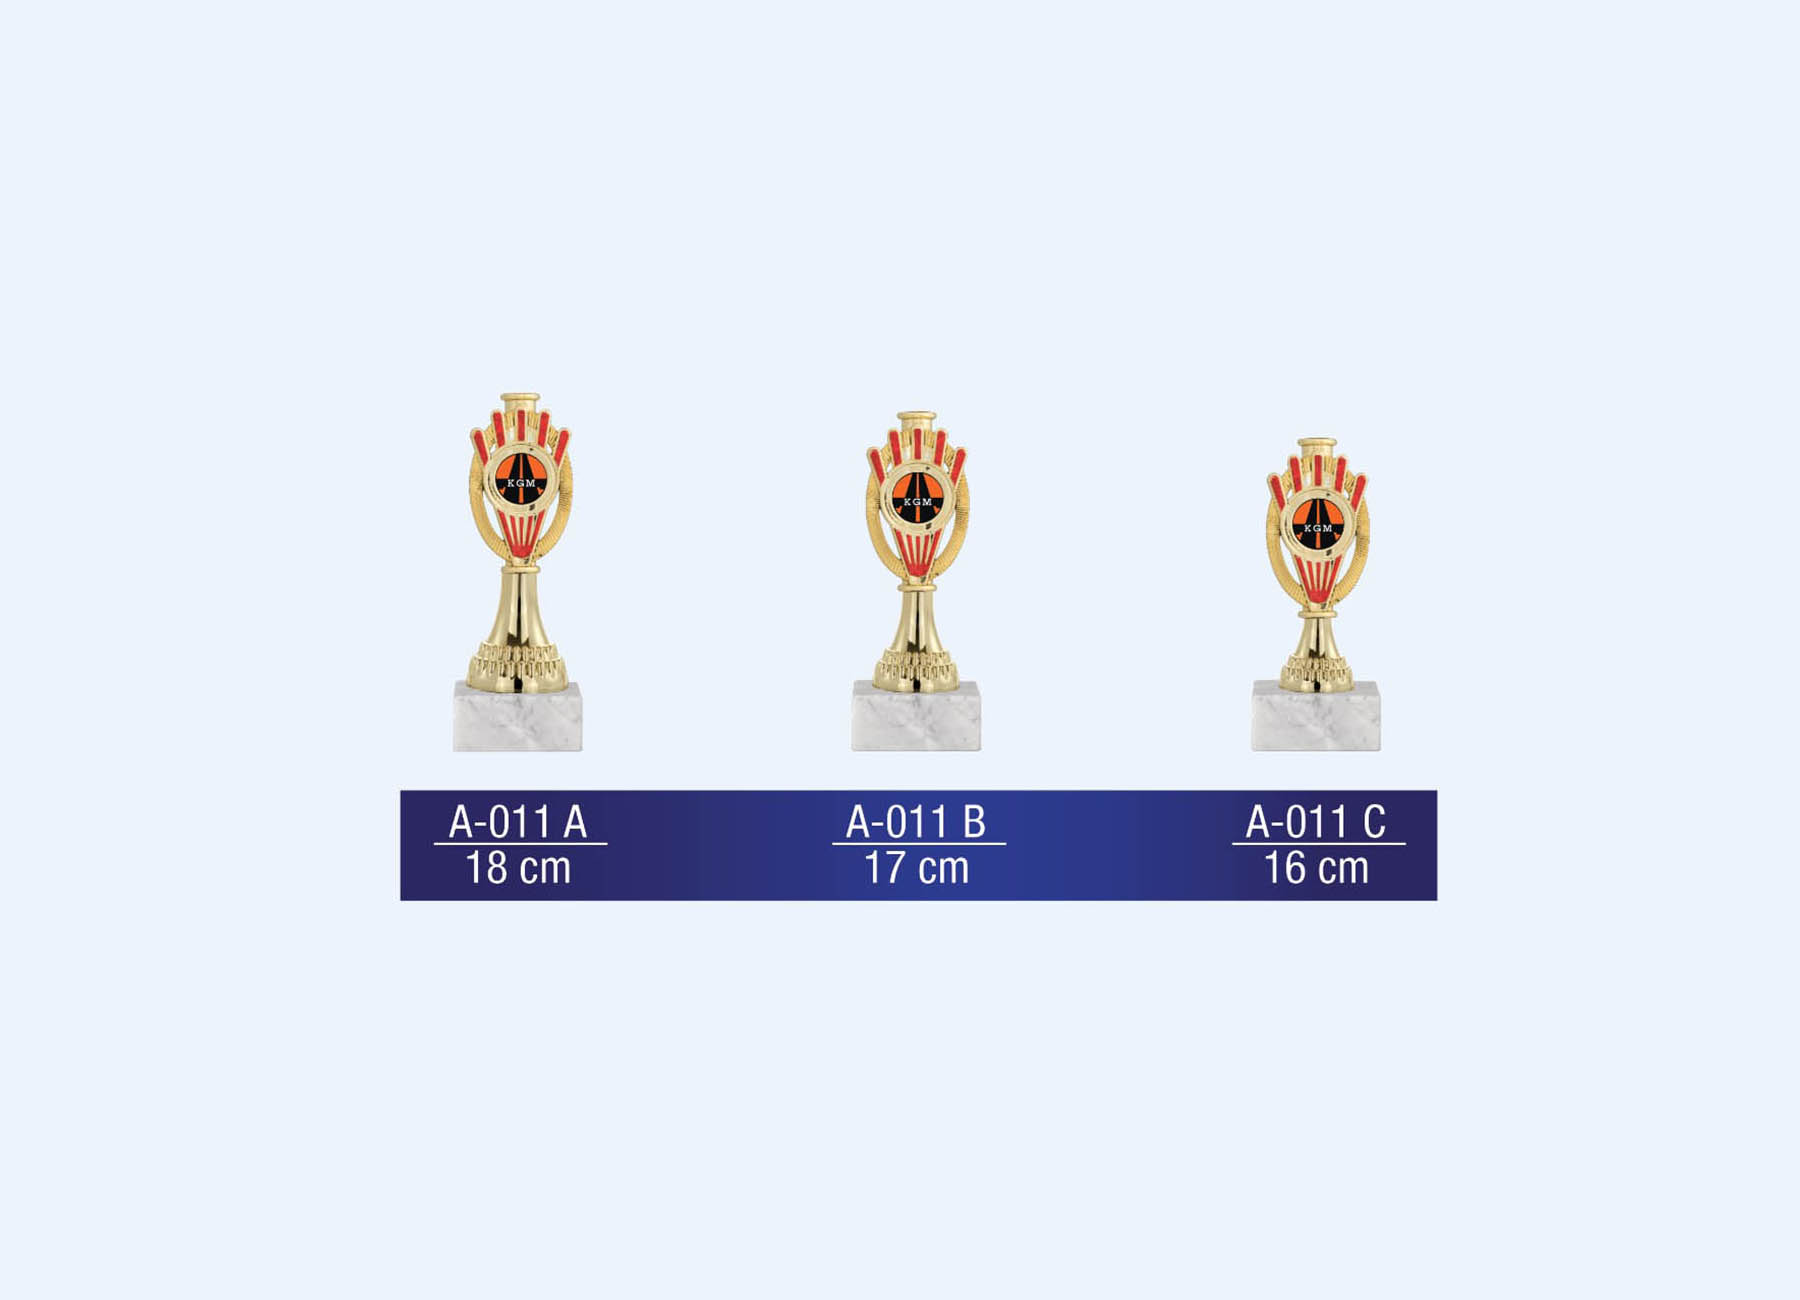 A-011 General Cups